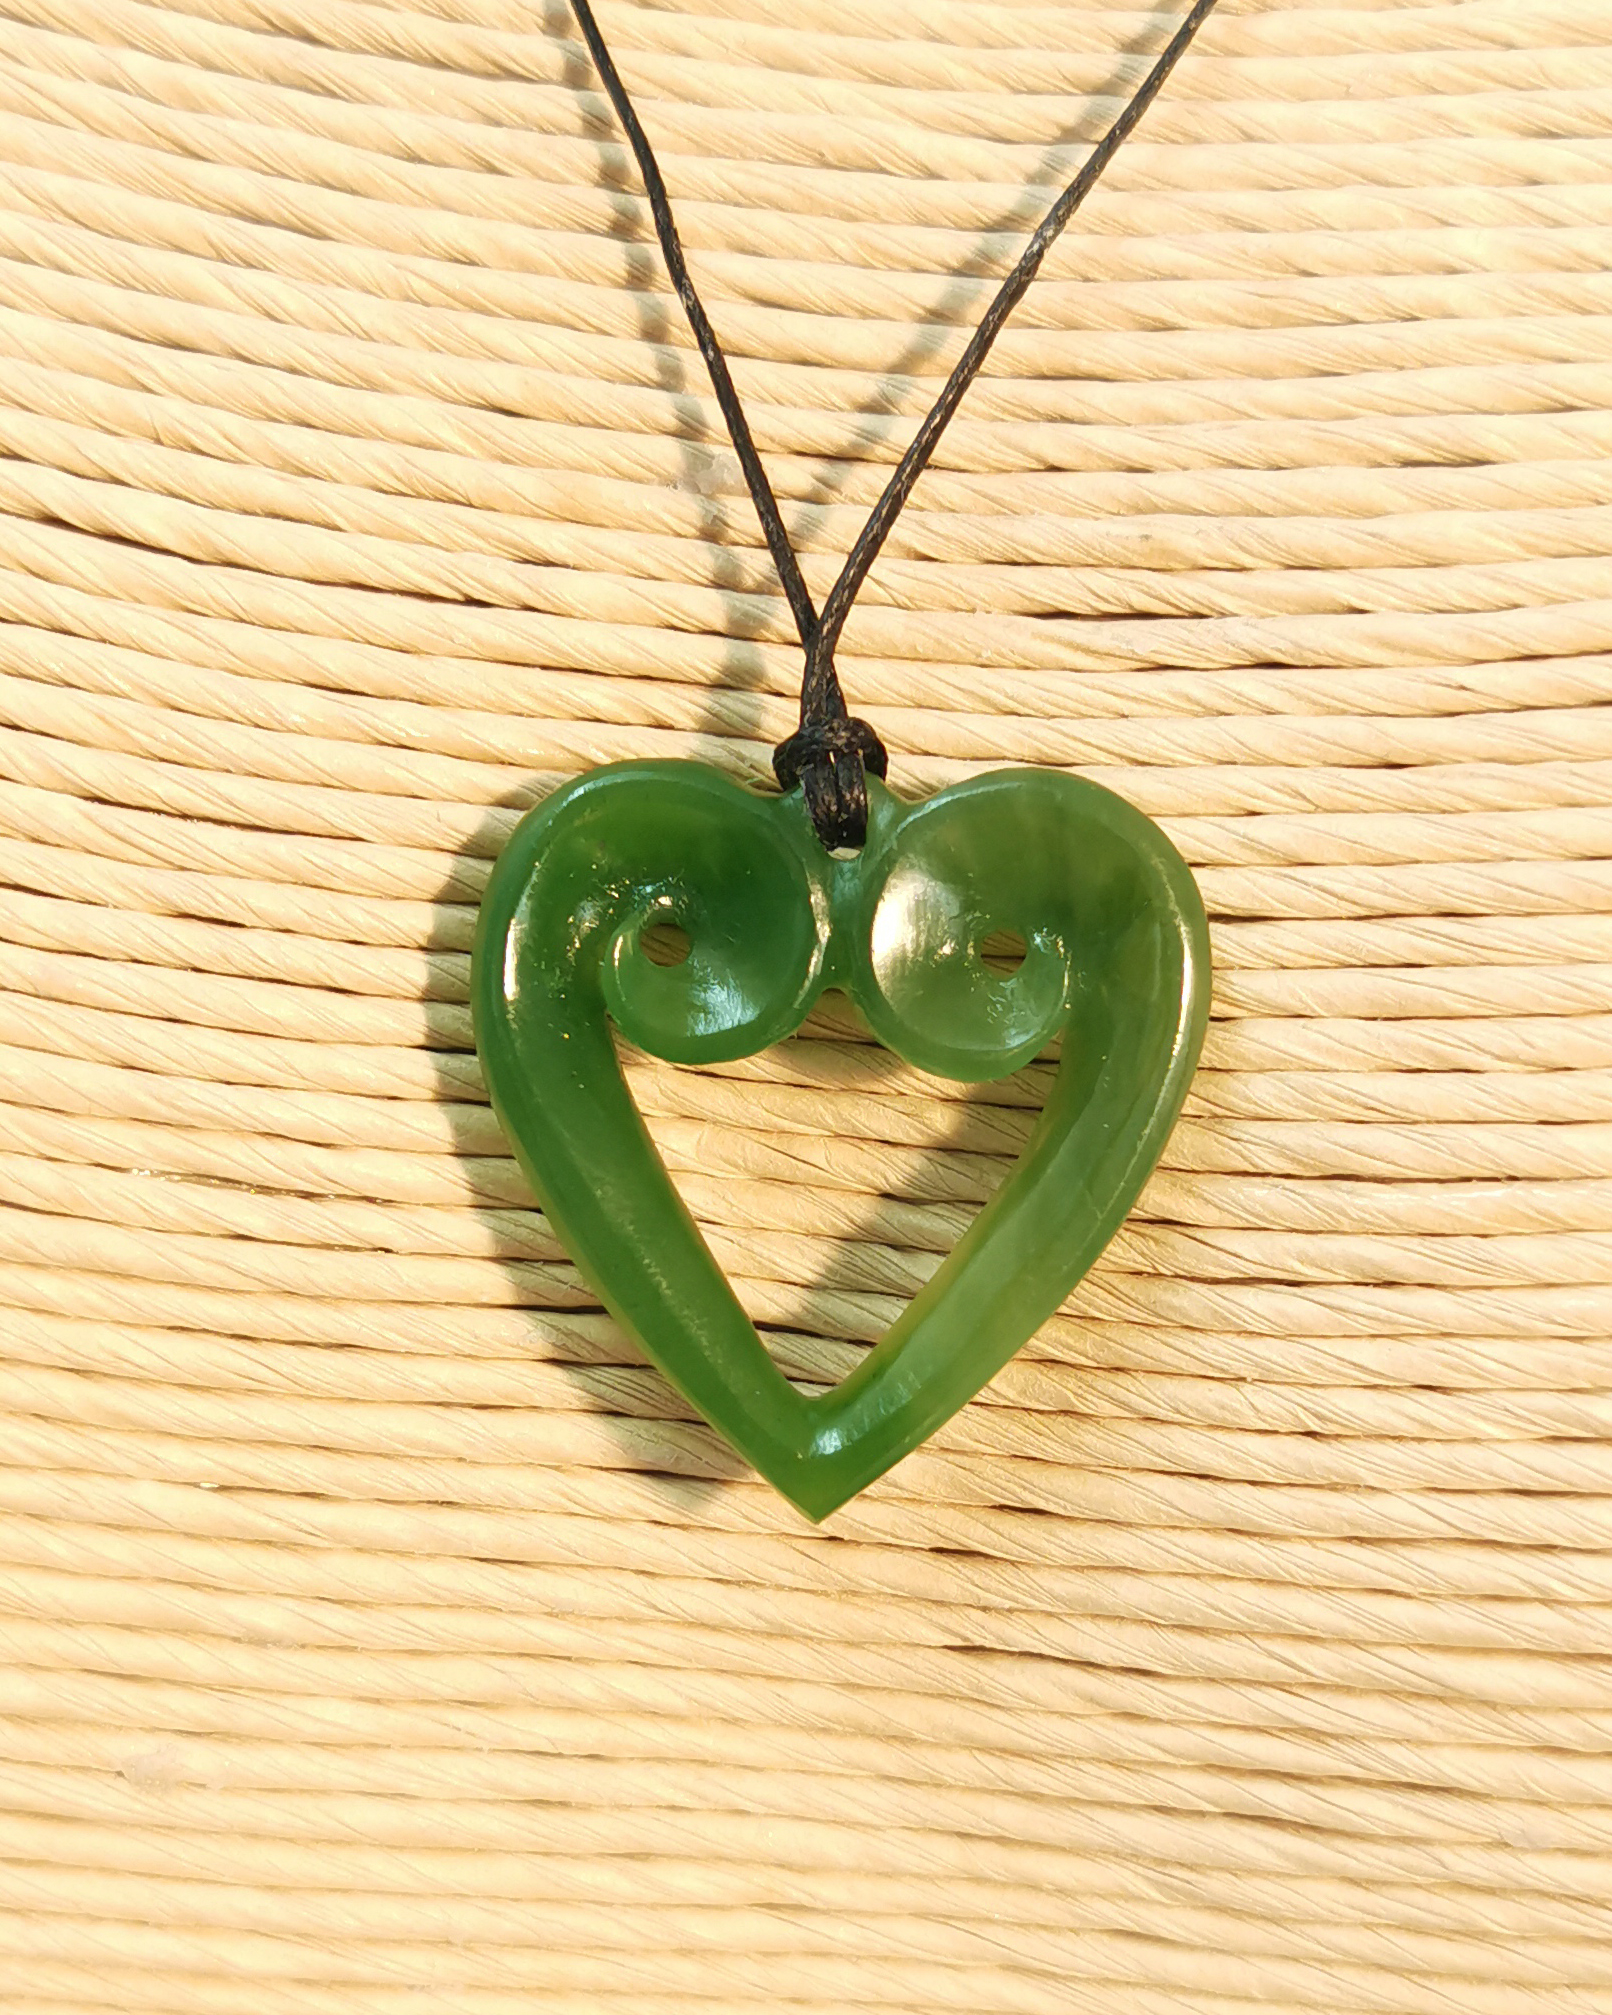 Koru heart greenstone pendant Ross Crump